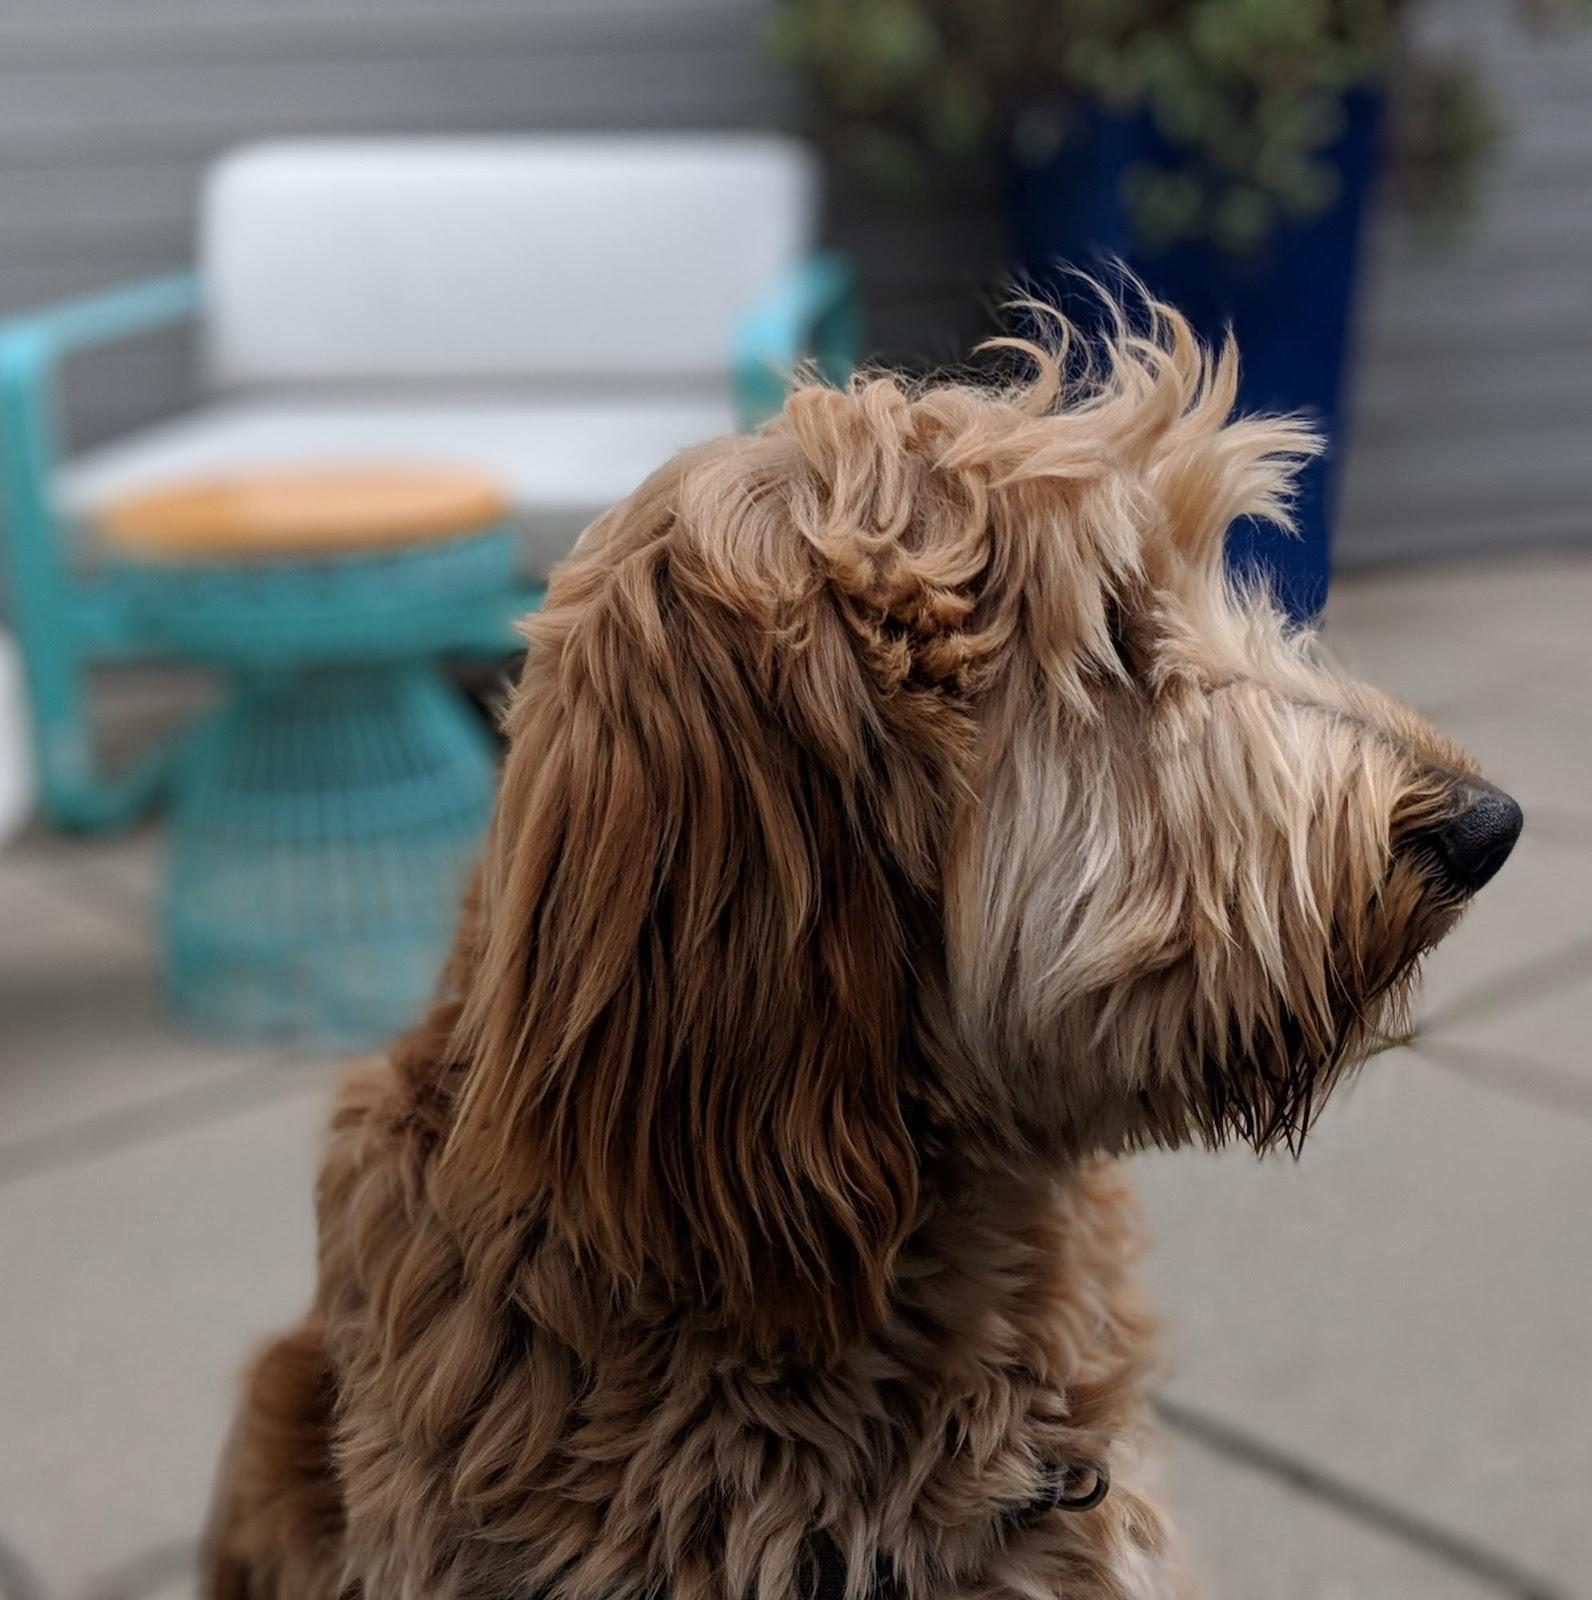 image of a shaggy dog's profile with patio furniture blurred out in the background.